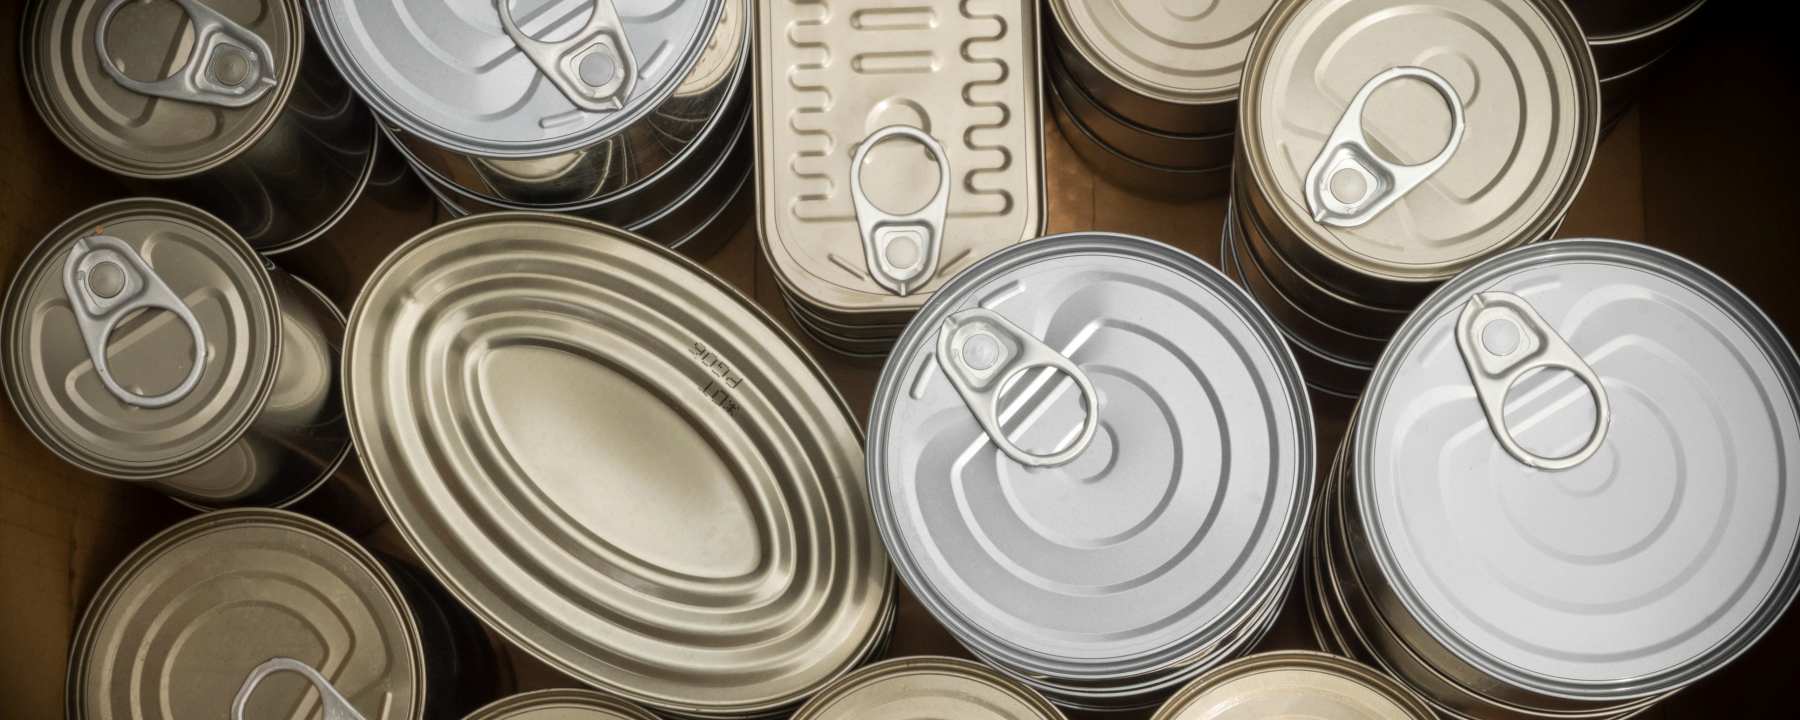 A Landmark Study On BPA Leaves Scientists at Odds